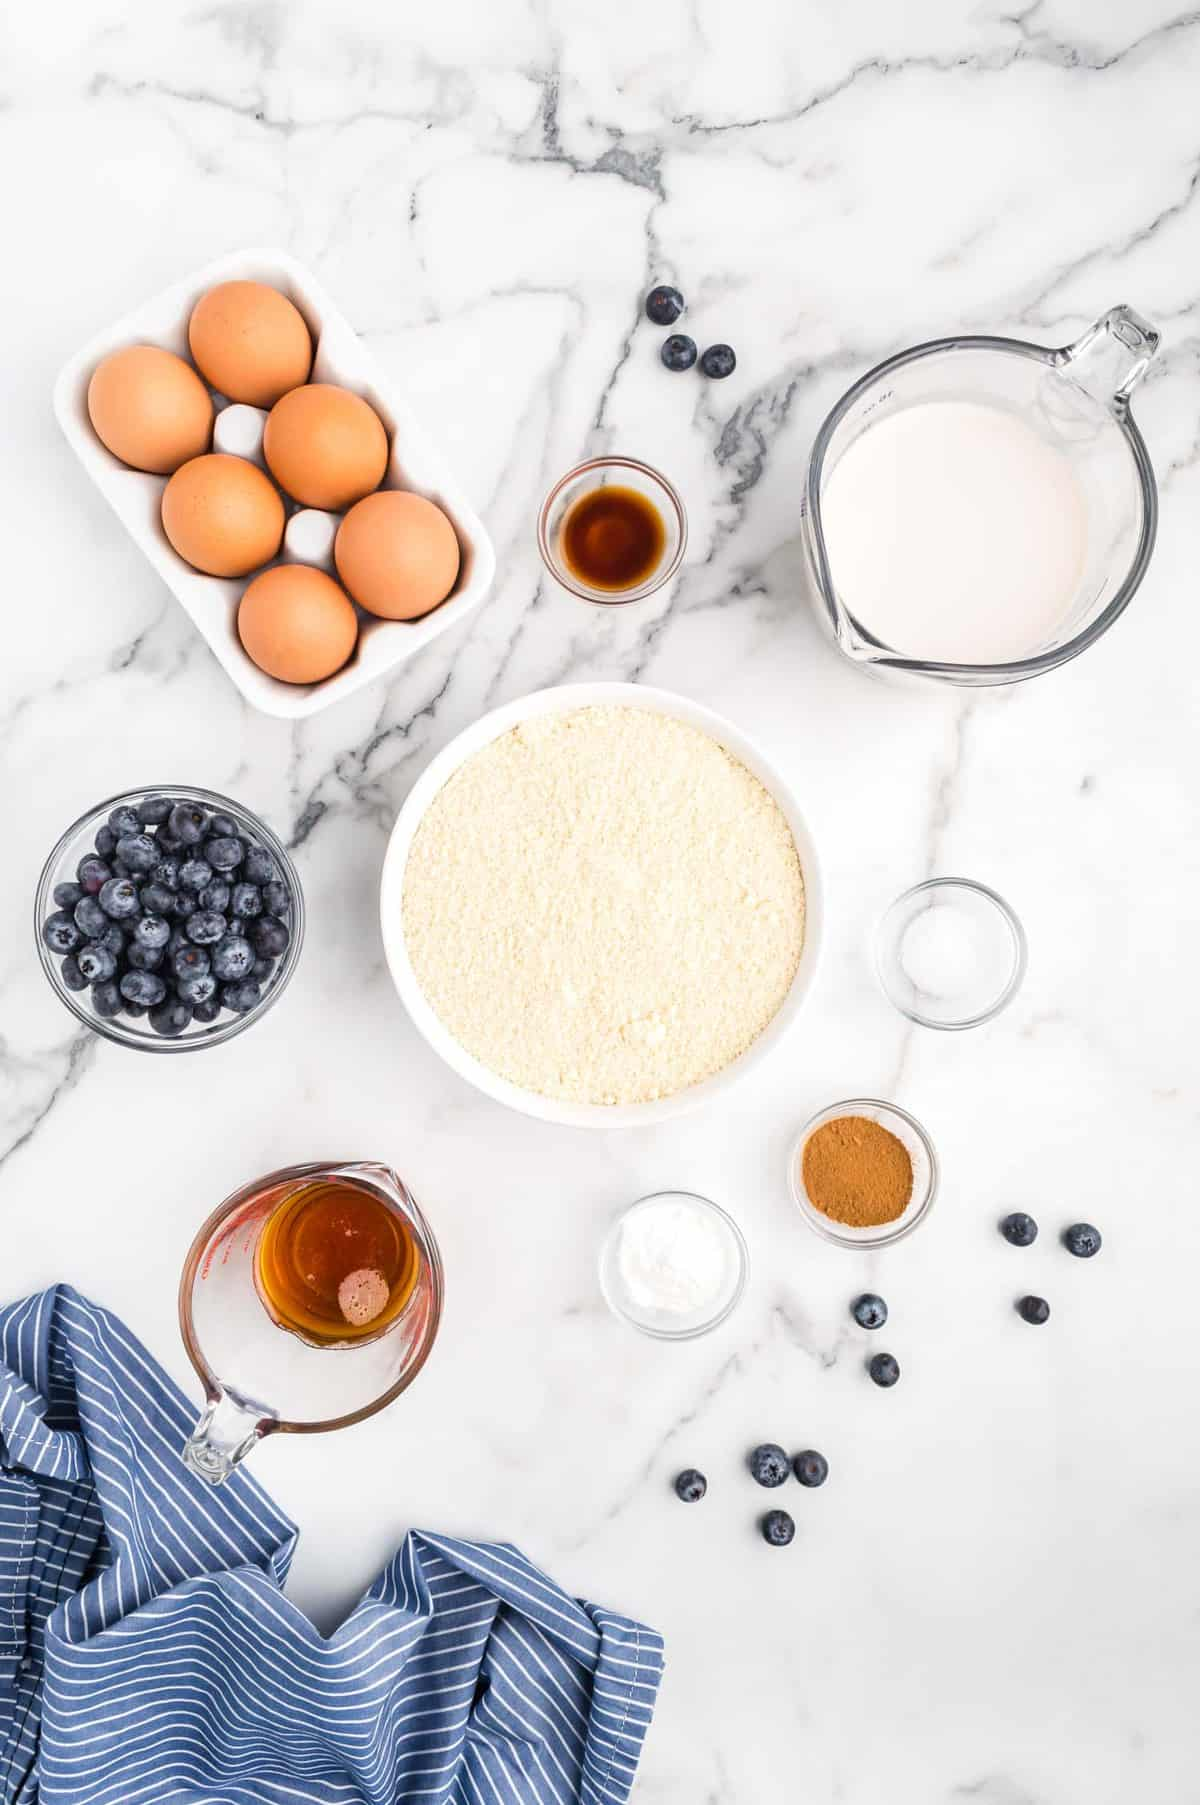 Overhead view of ingredients, including blueberries and brown eggs.